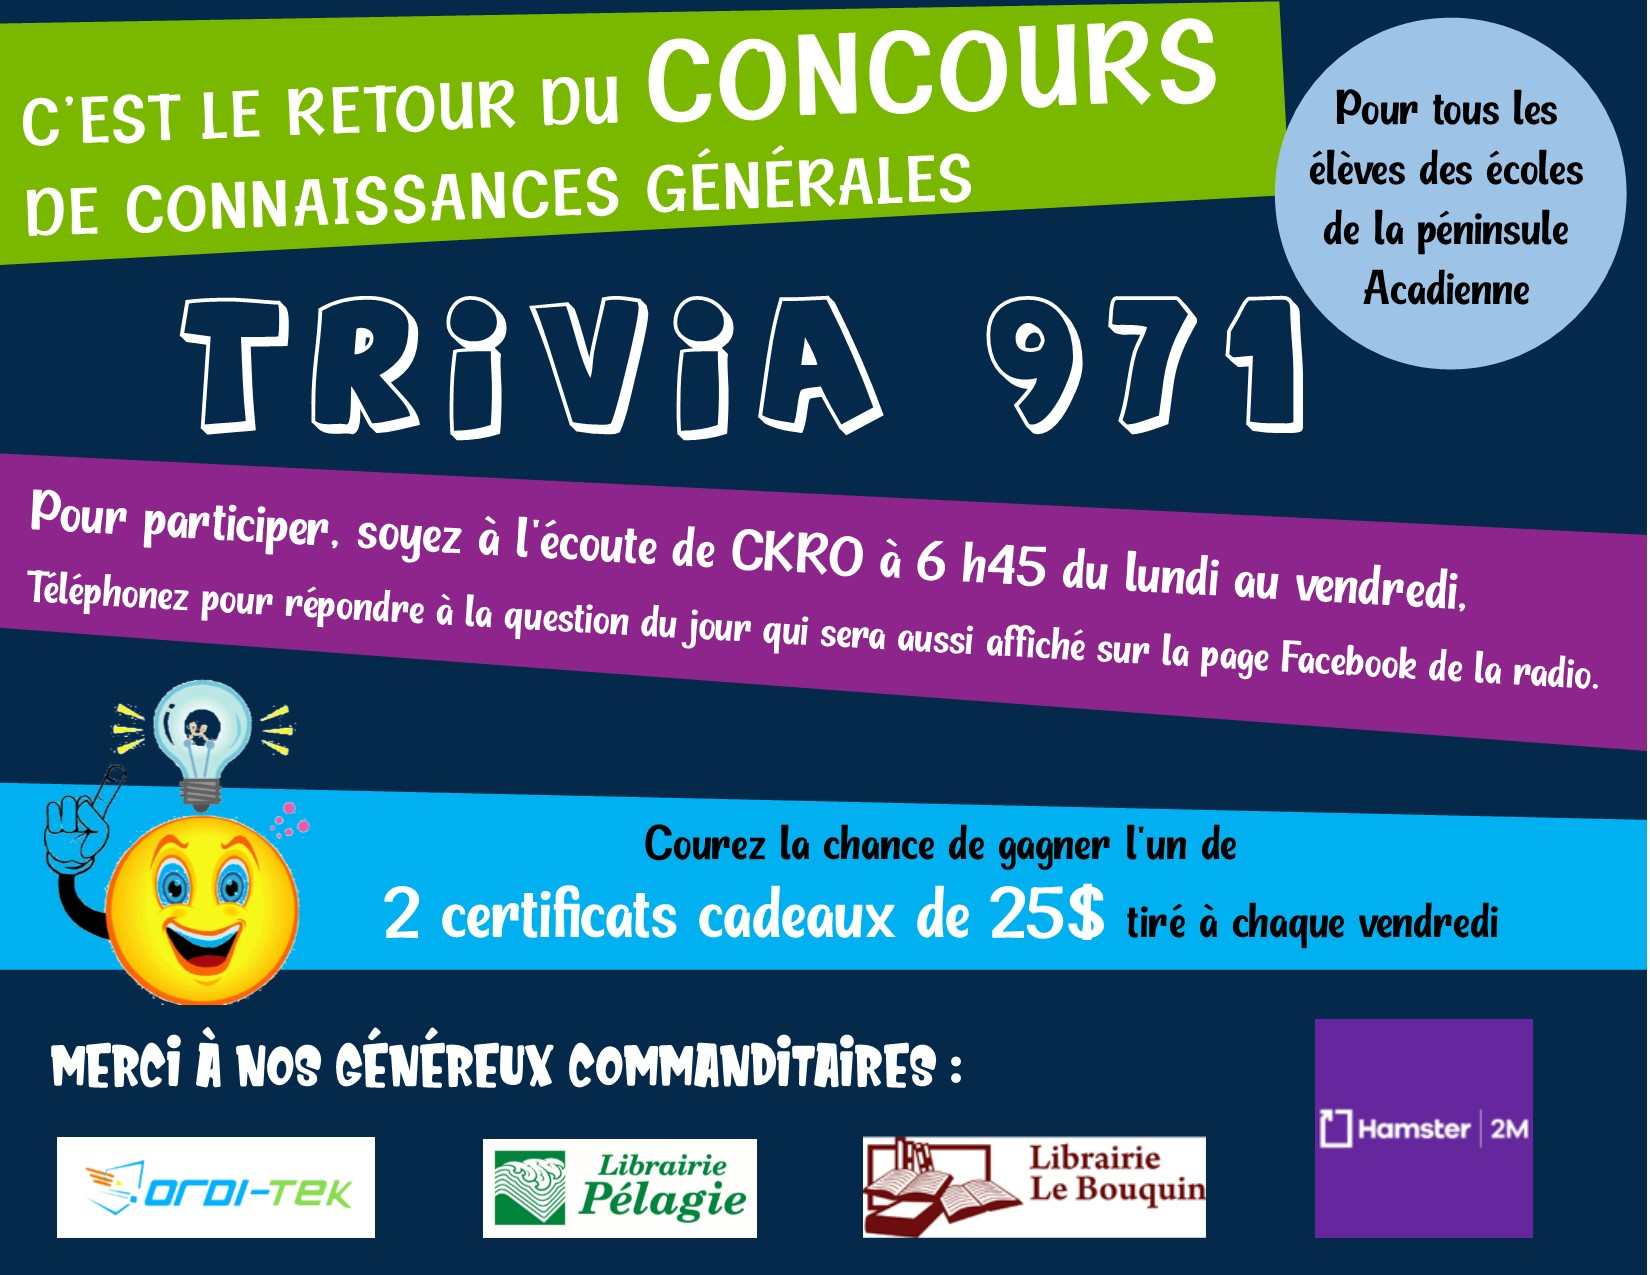 Concours Trivia 971 2020